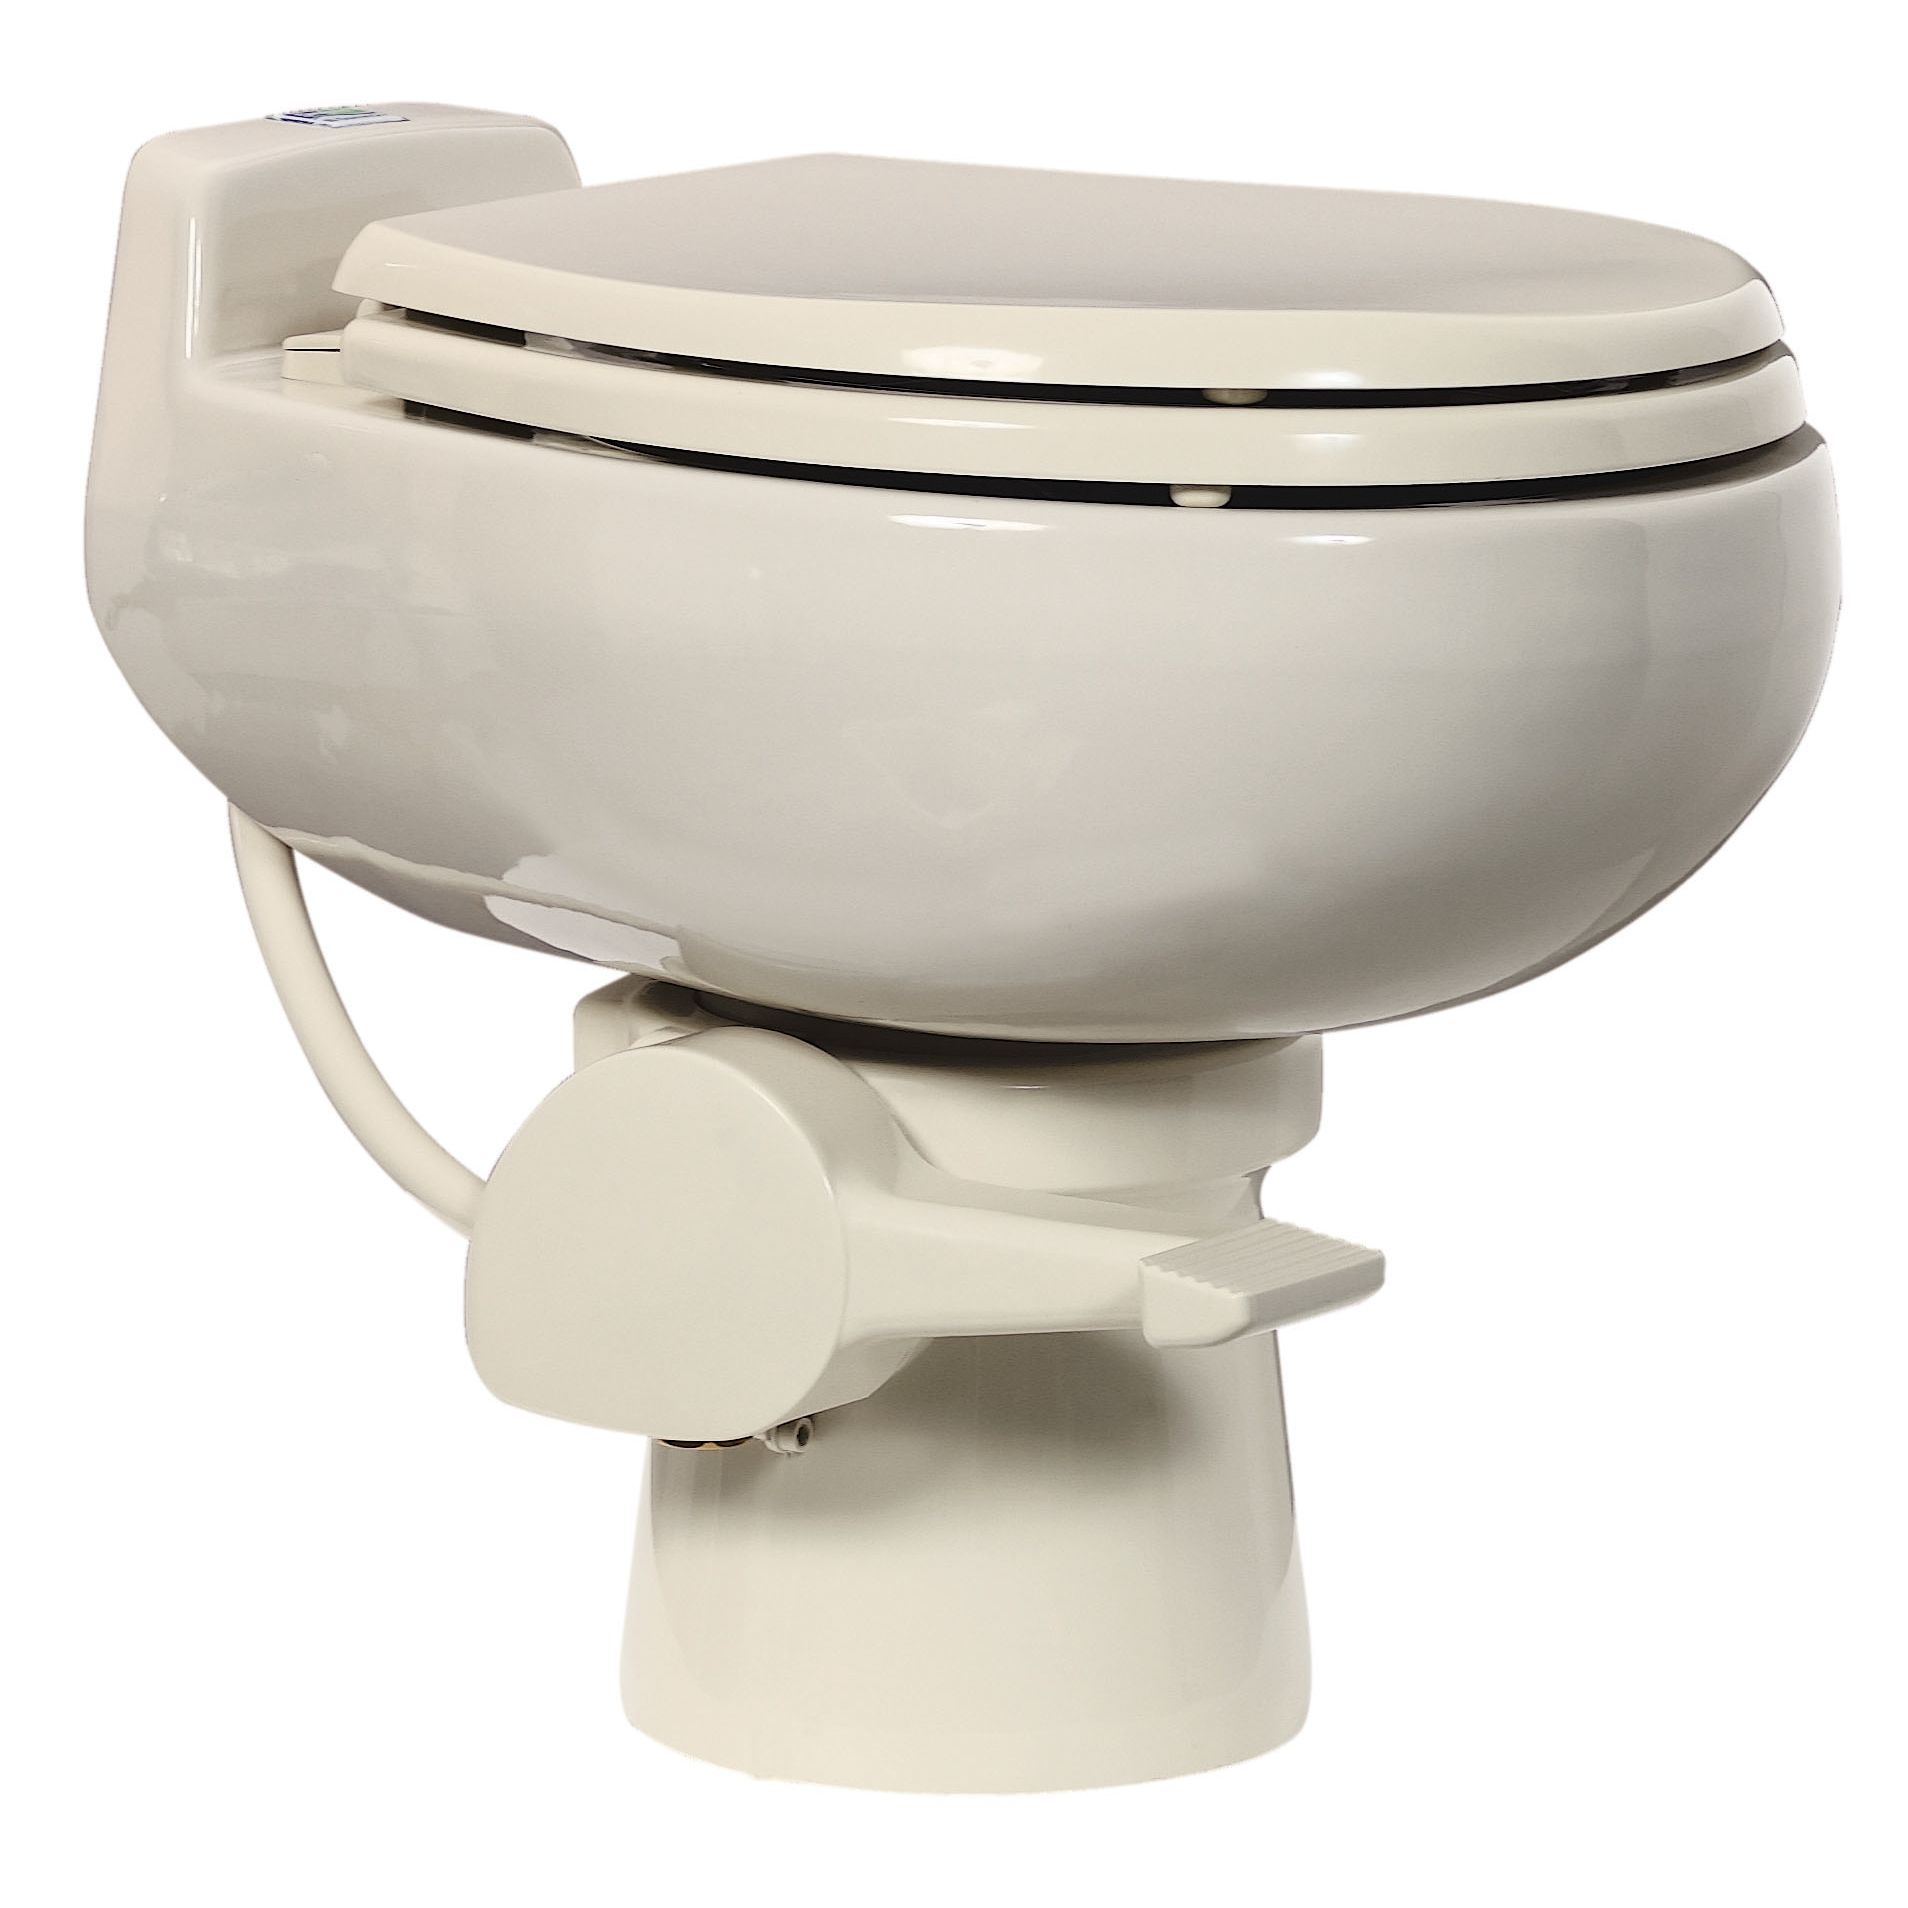 Sealand 510+ One Pint Flush Toilet - Bone